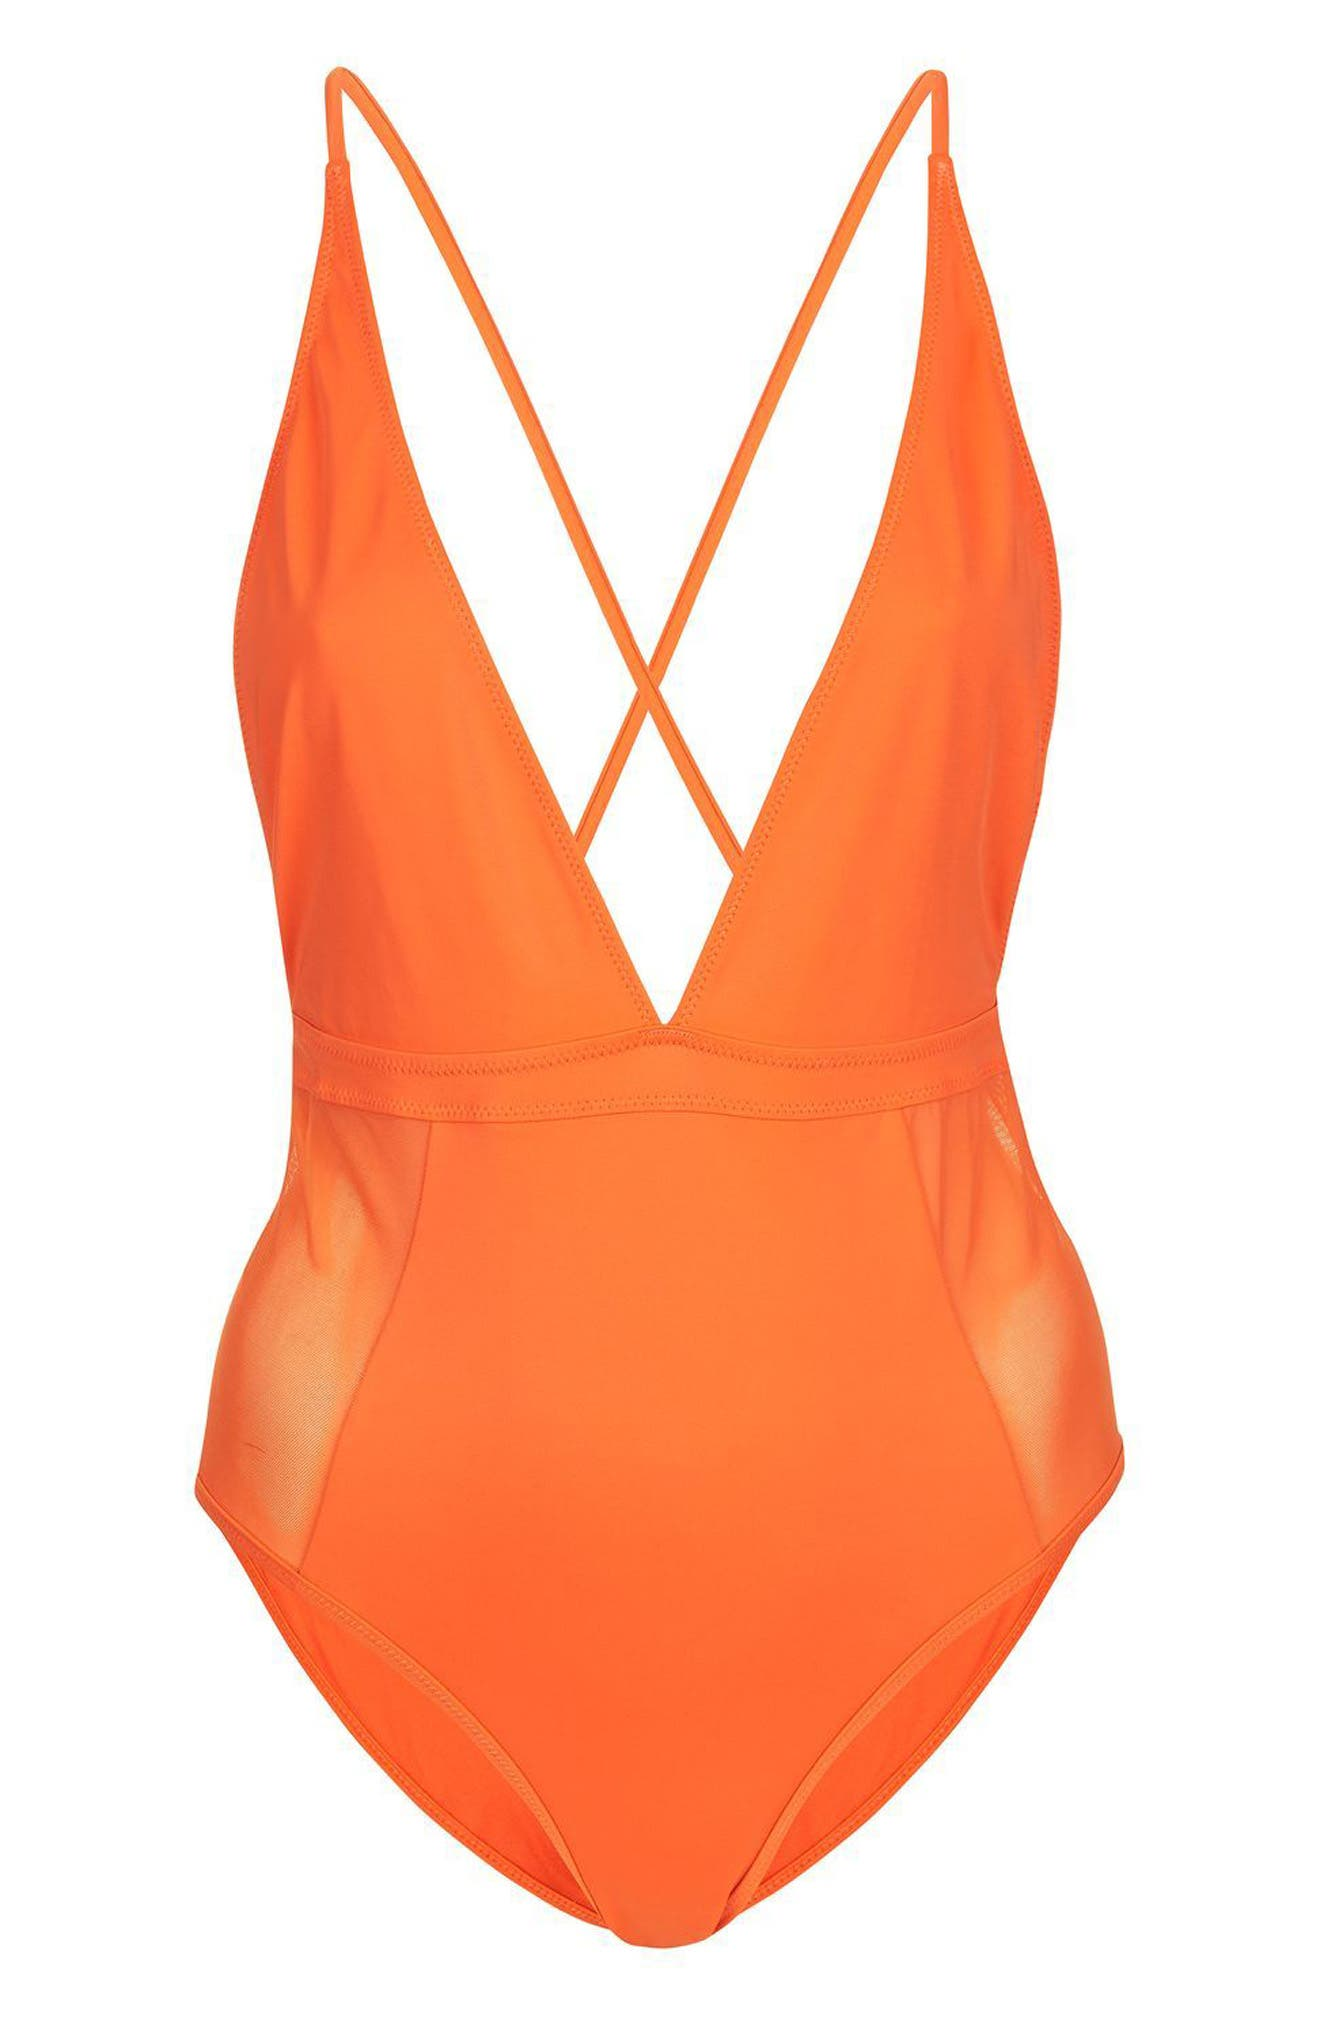 Main Image - Topshop Cindy One-Piece Swimsuit